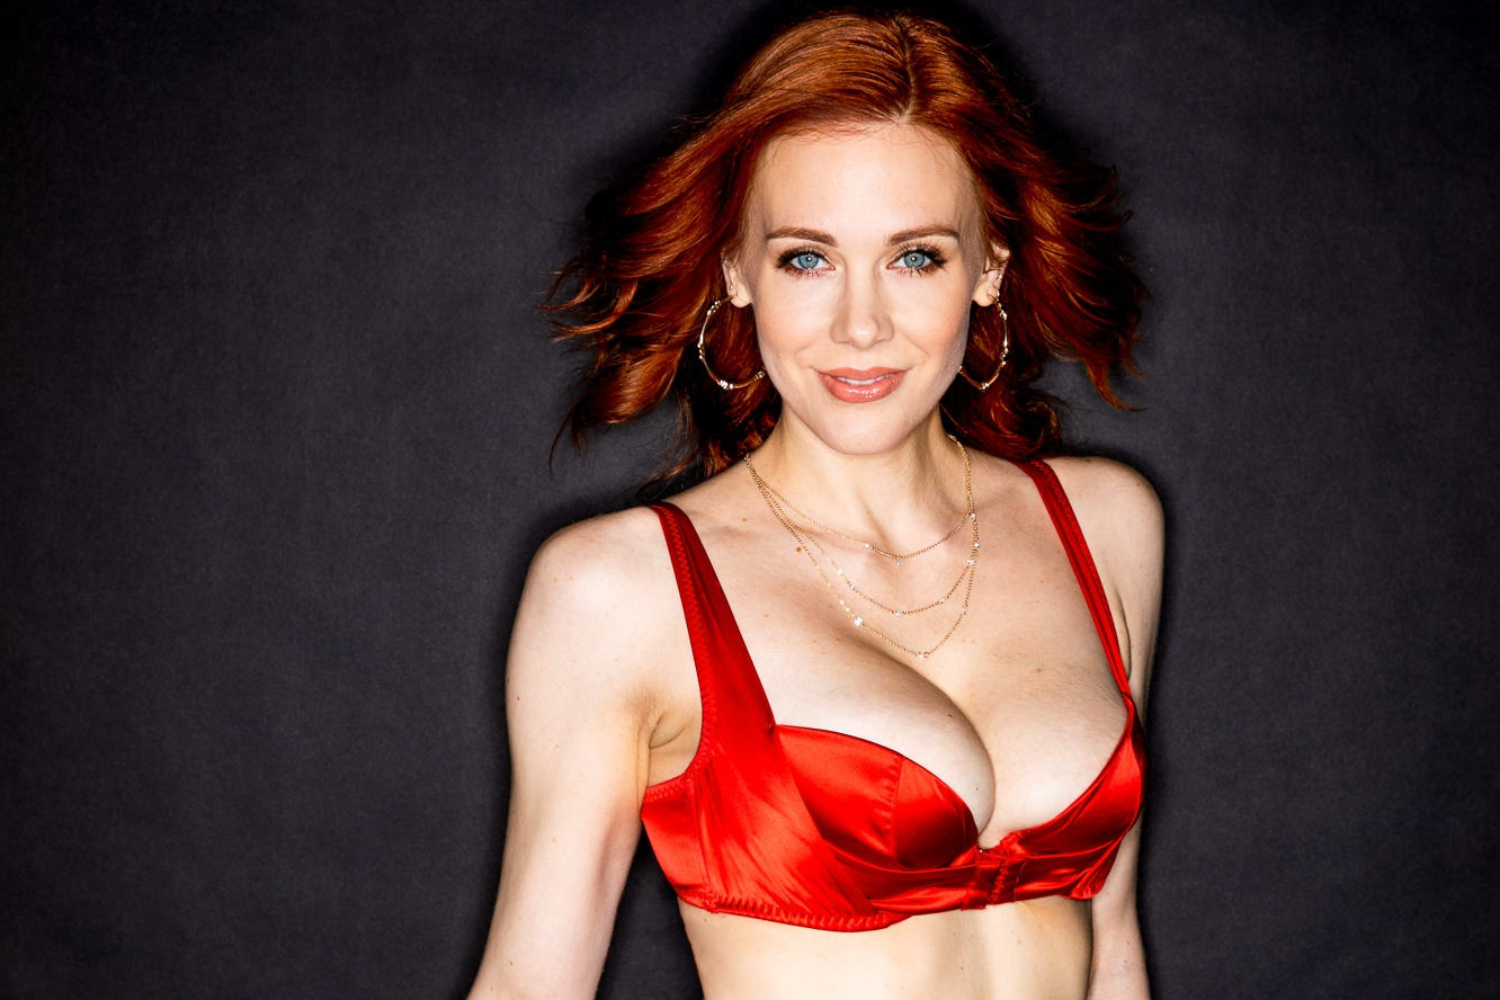 Photo of Maitland Ward in a red bra